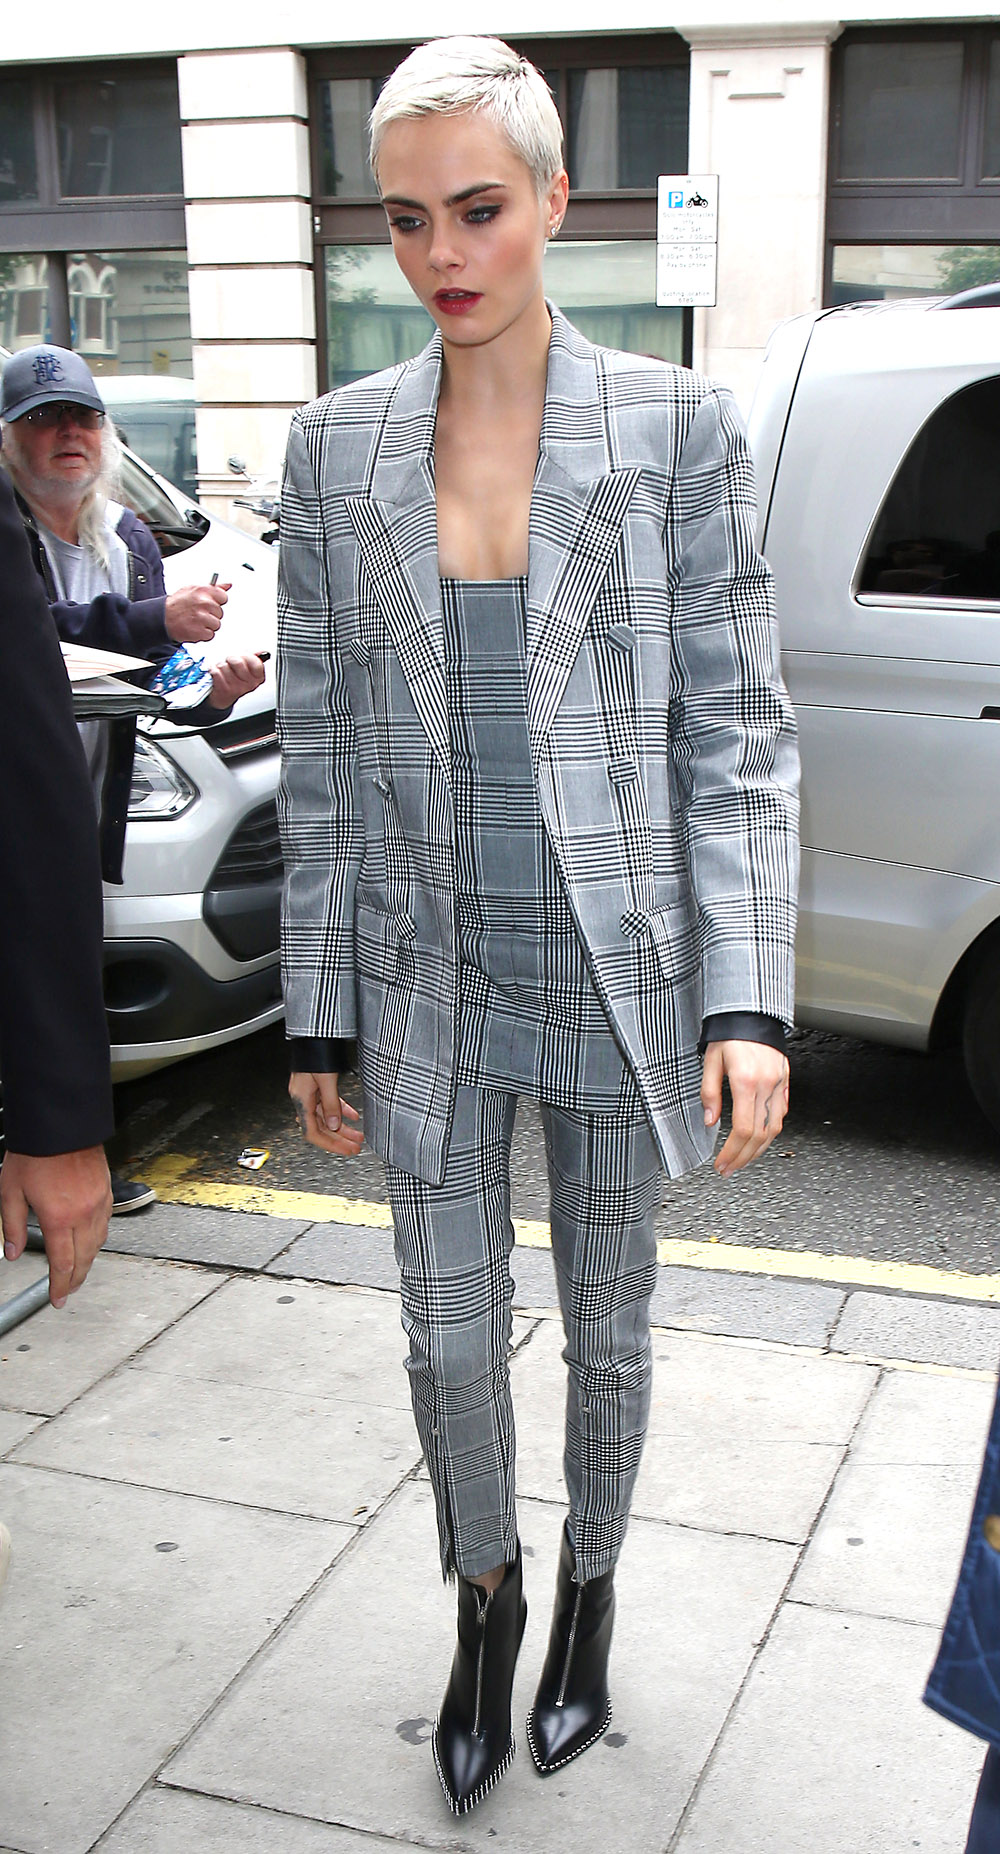 LONDON, ENGLAND - JULY 24:  Cara Delevingne seen at BBC Radio 2 promoting new movie 'Valerian' on July 24, 2017 in London, England.  (Photo by Neil Mockford/GC Images)